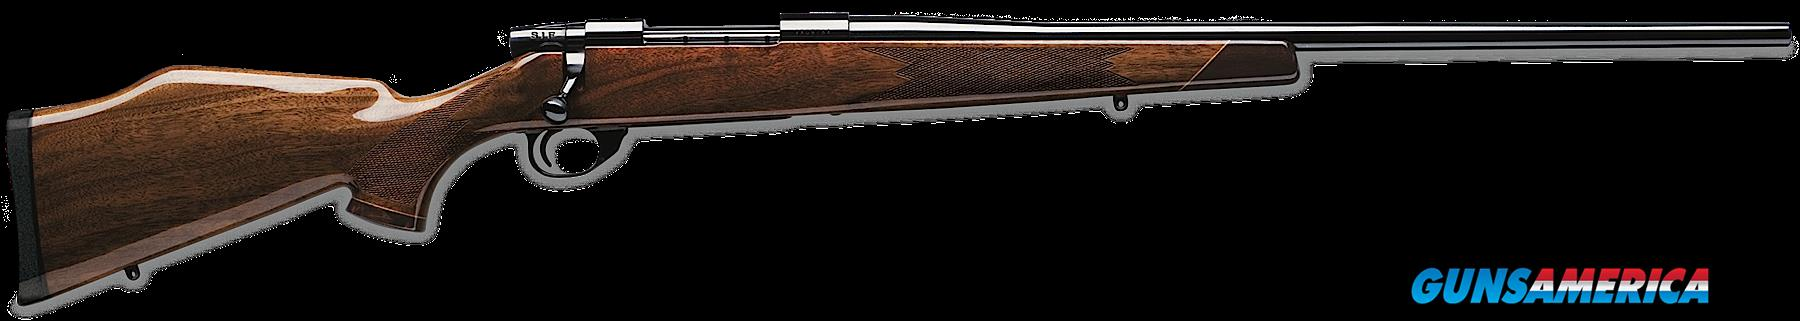 "Weatherby VGX300NR4O Vanguard Series 2 Deluxe Bolt 300 Winchester Magnum 24"" 3+1 Walnut Stk Blued  Guns > Rifles > W Misc Rifles"